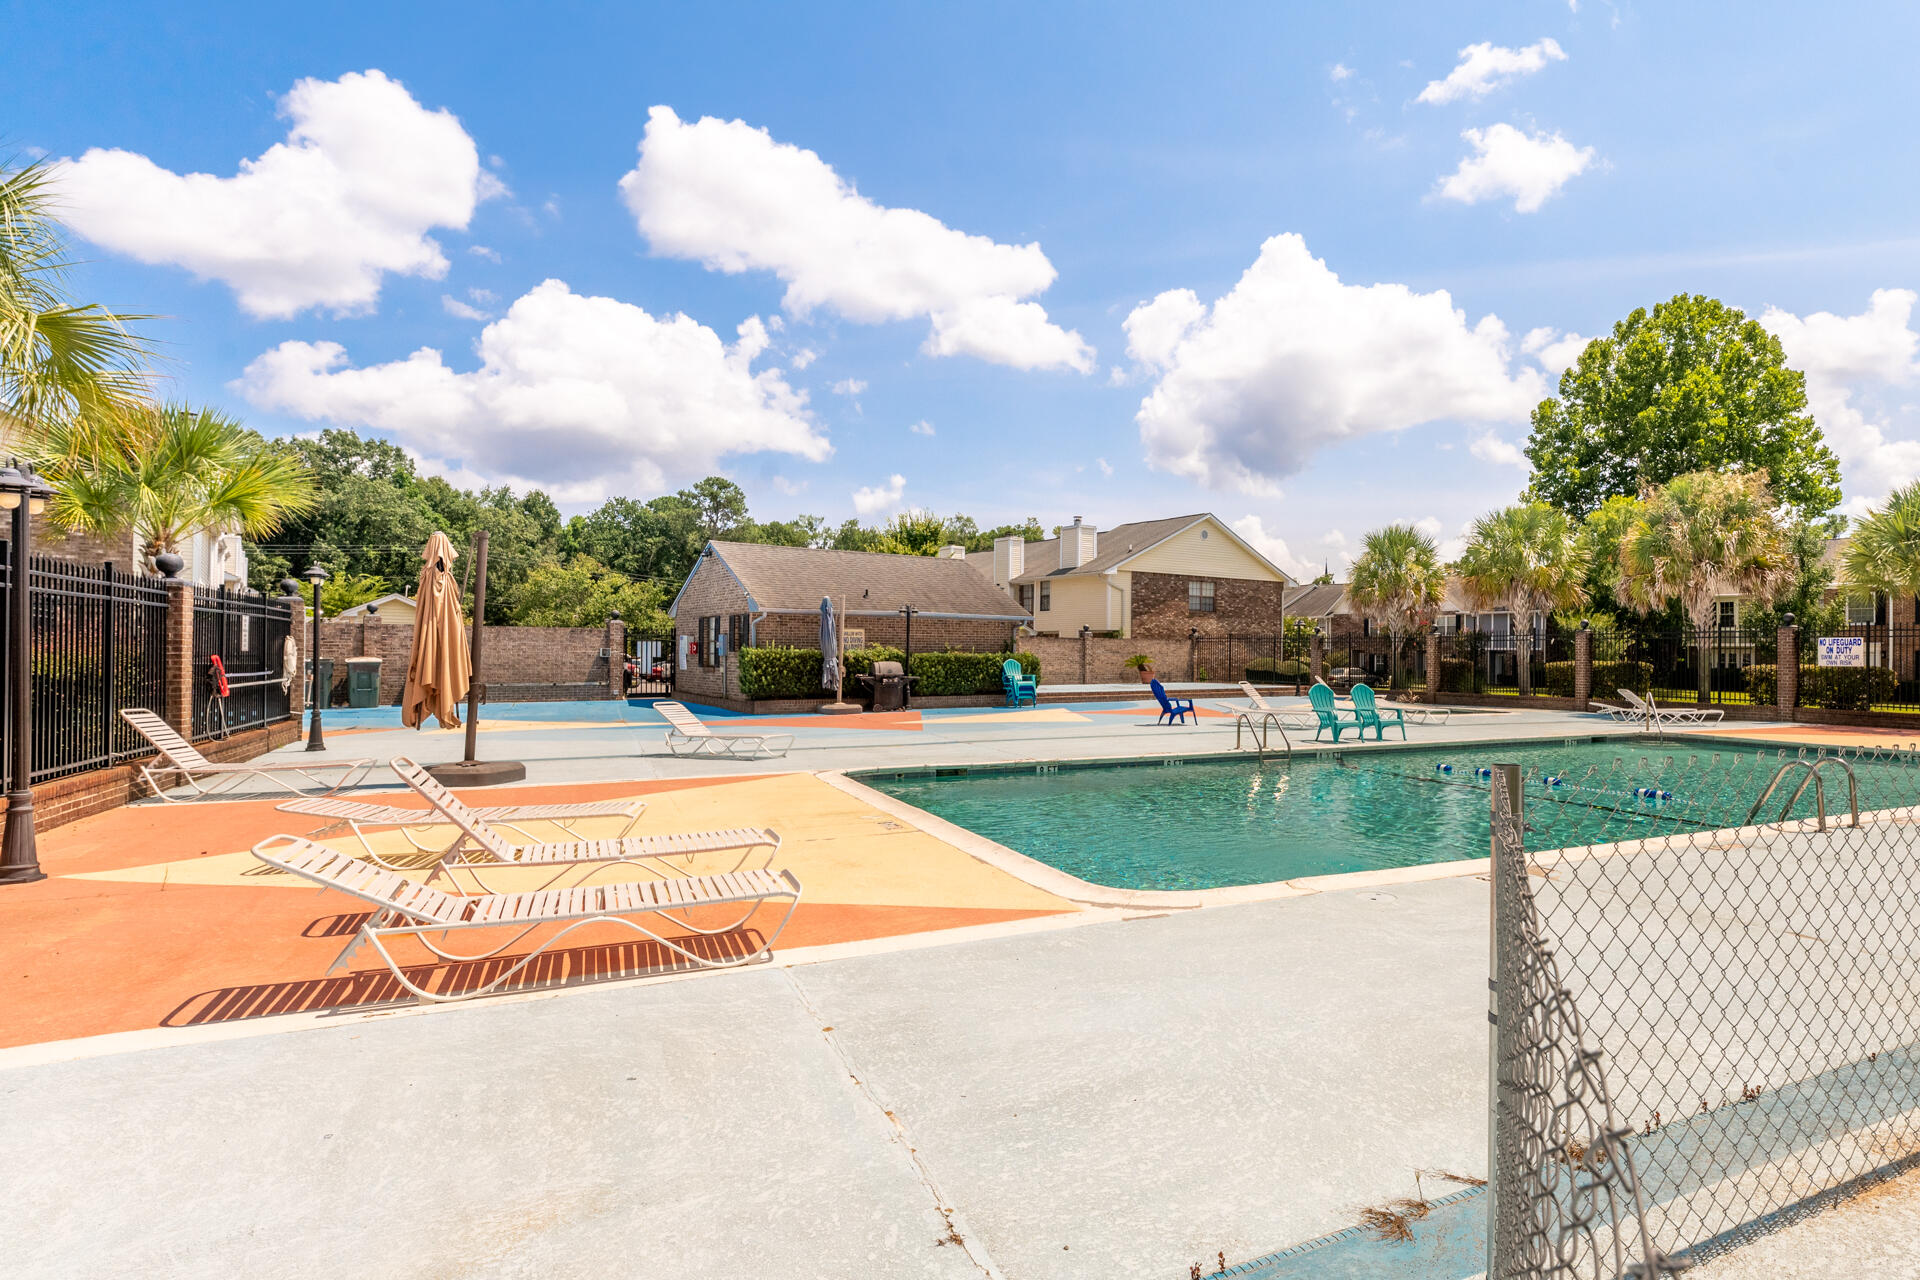 Old Towne Villas Homes For Sale - 2931 Cathedral, Charleston, SC - 19